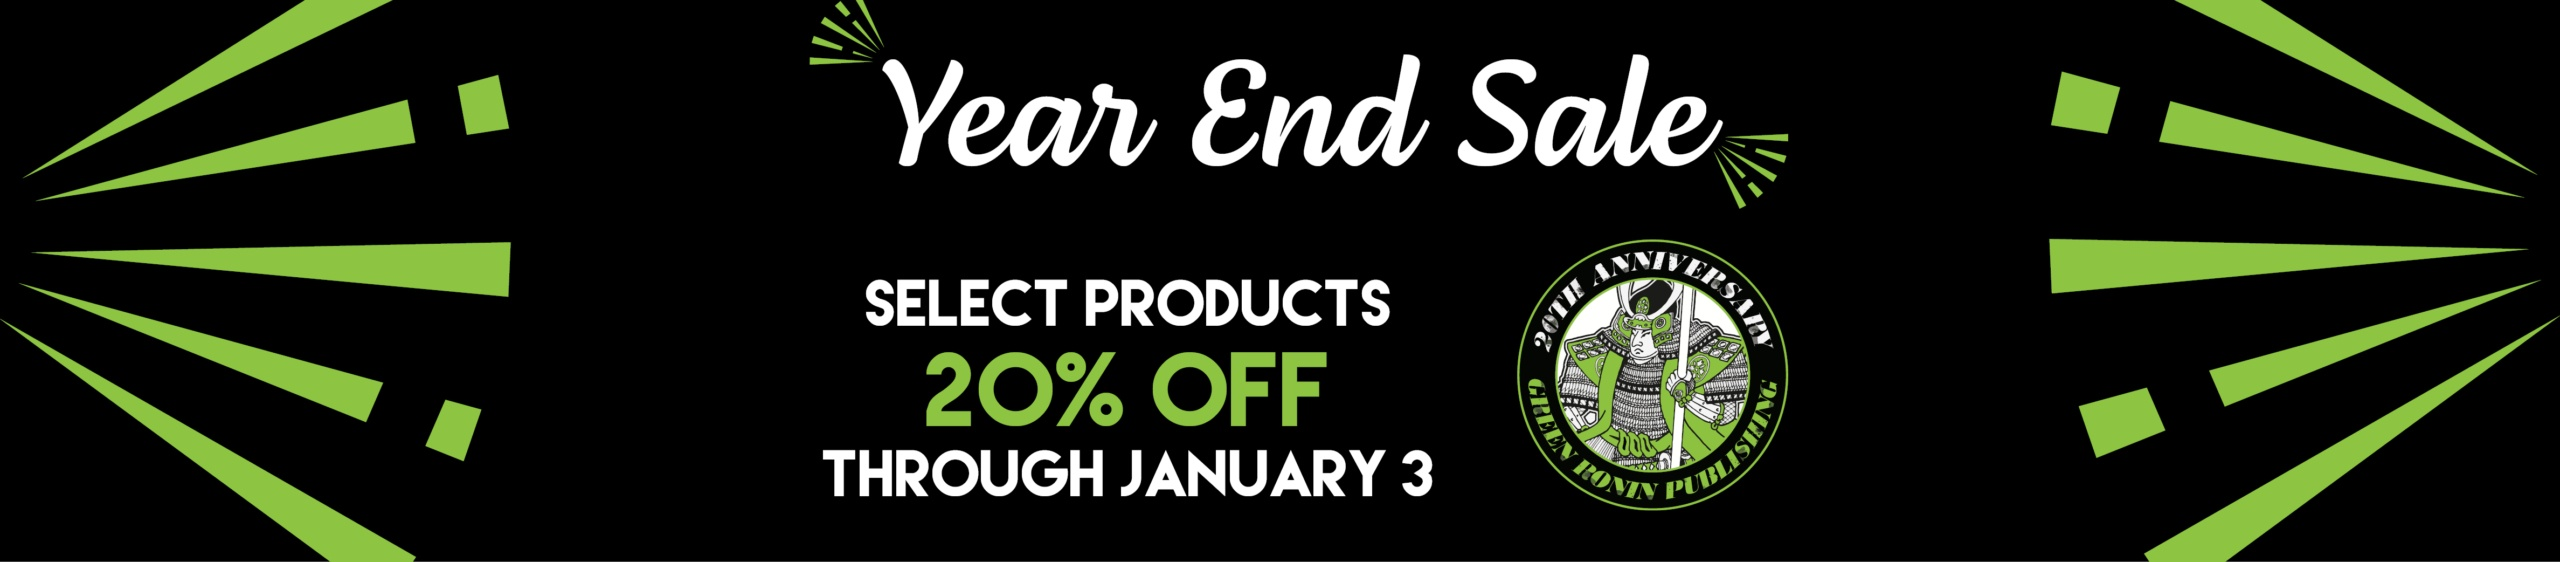 Year End Sale 2020